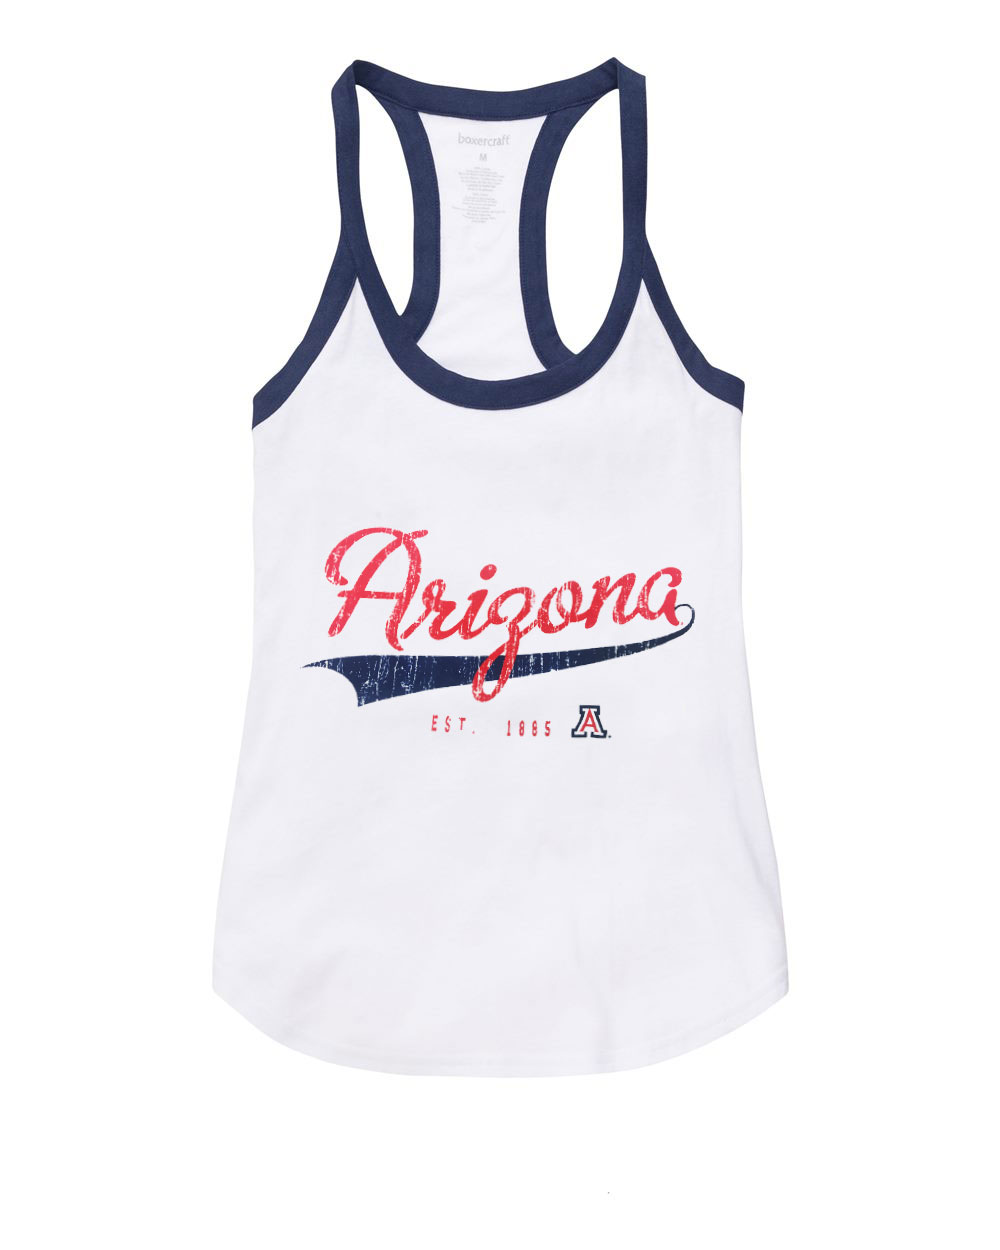 Image For Boxercraft: Arizona Est 1885 Women's Ringer Tank -White/Navy